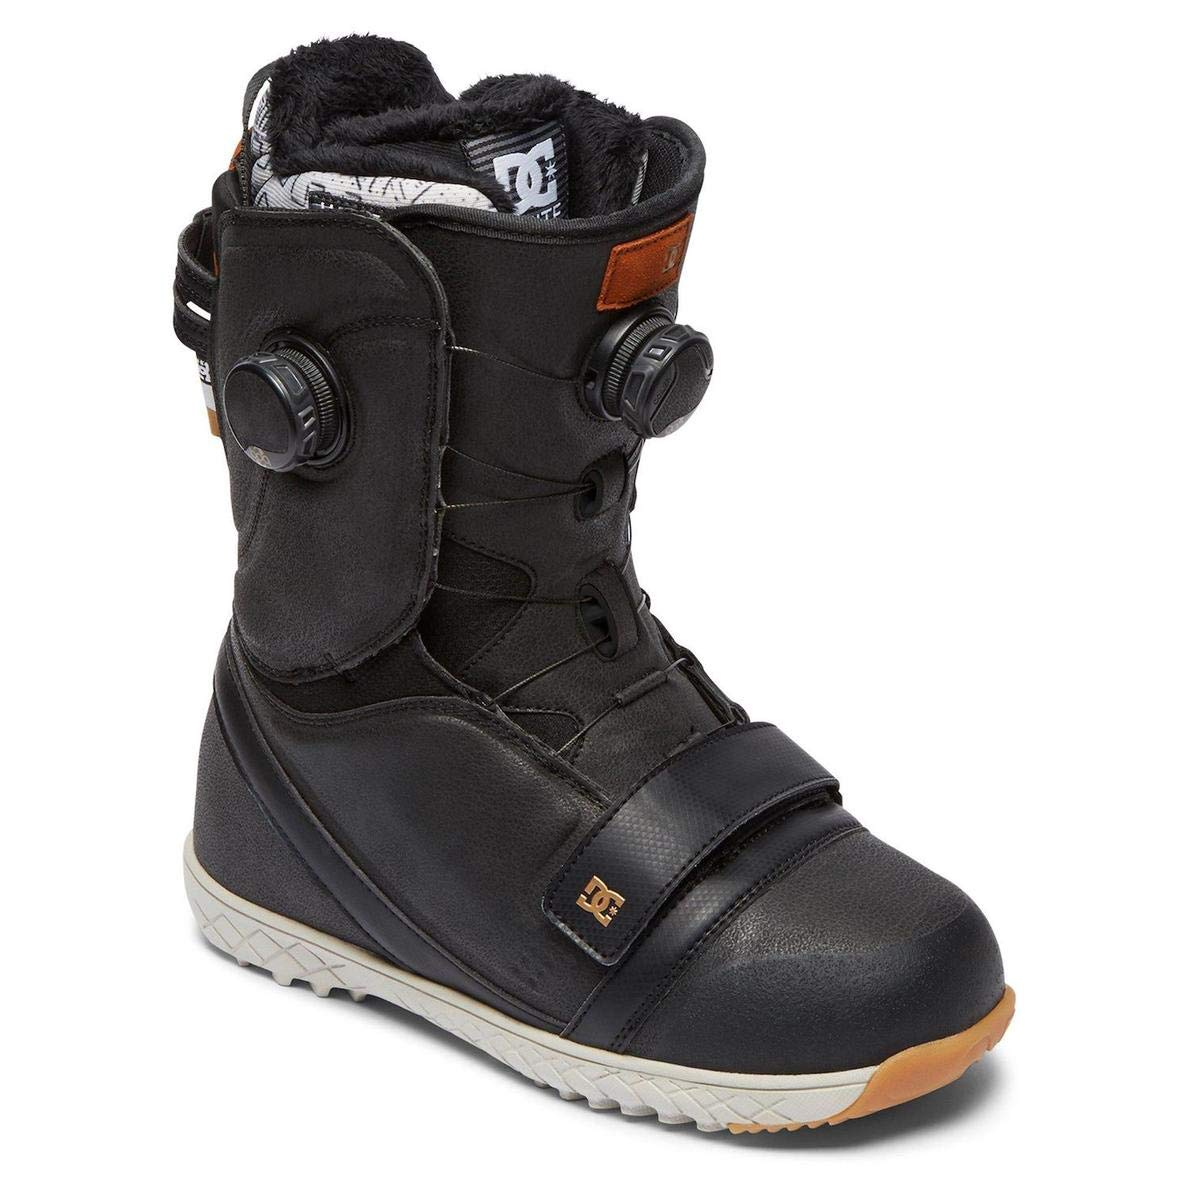 DC Shoes Women's Mora BOA Snowboard Boots Black 7.5 by DC